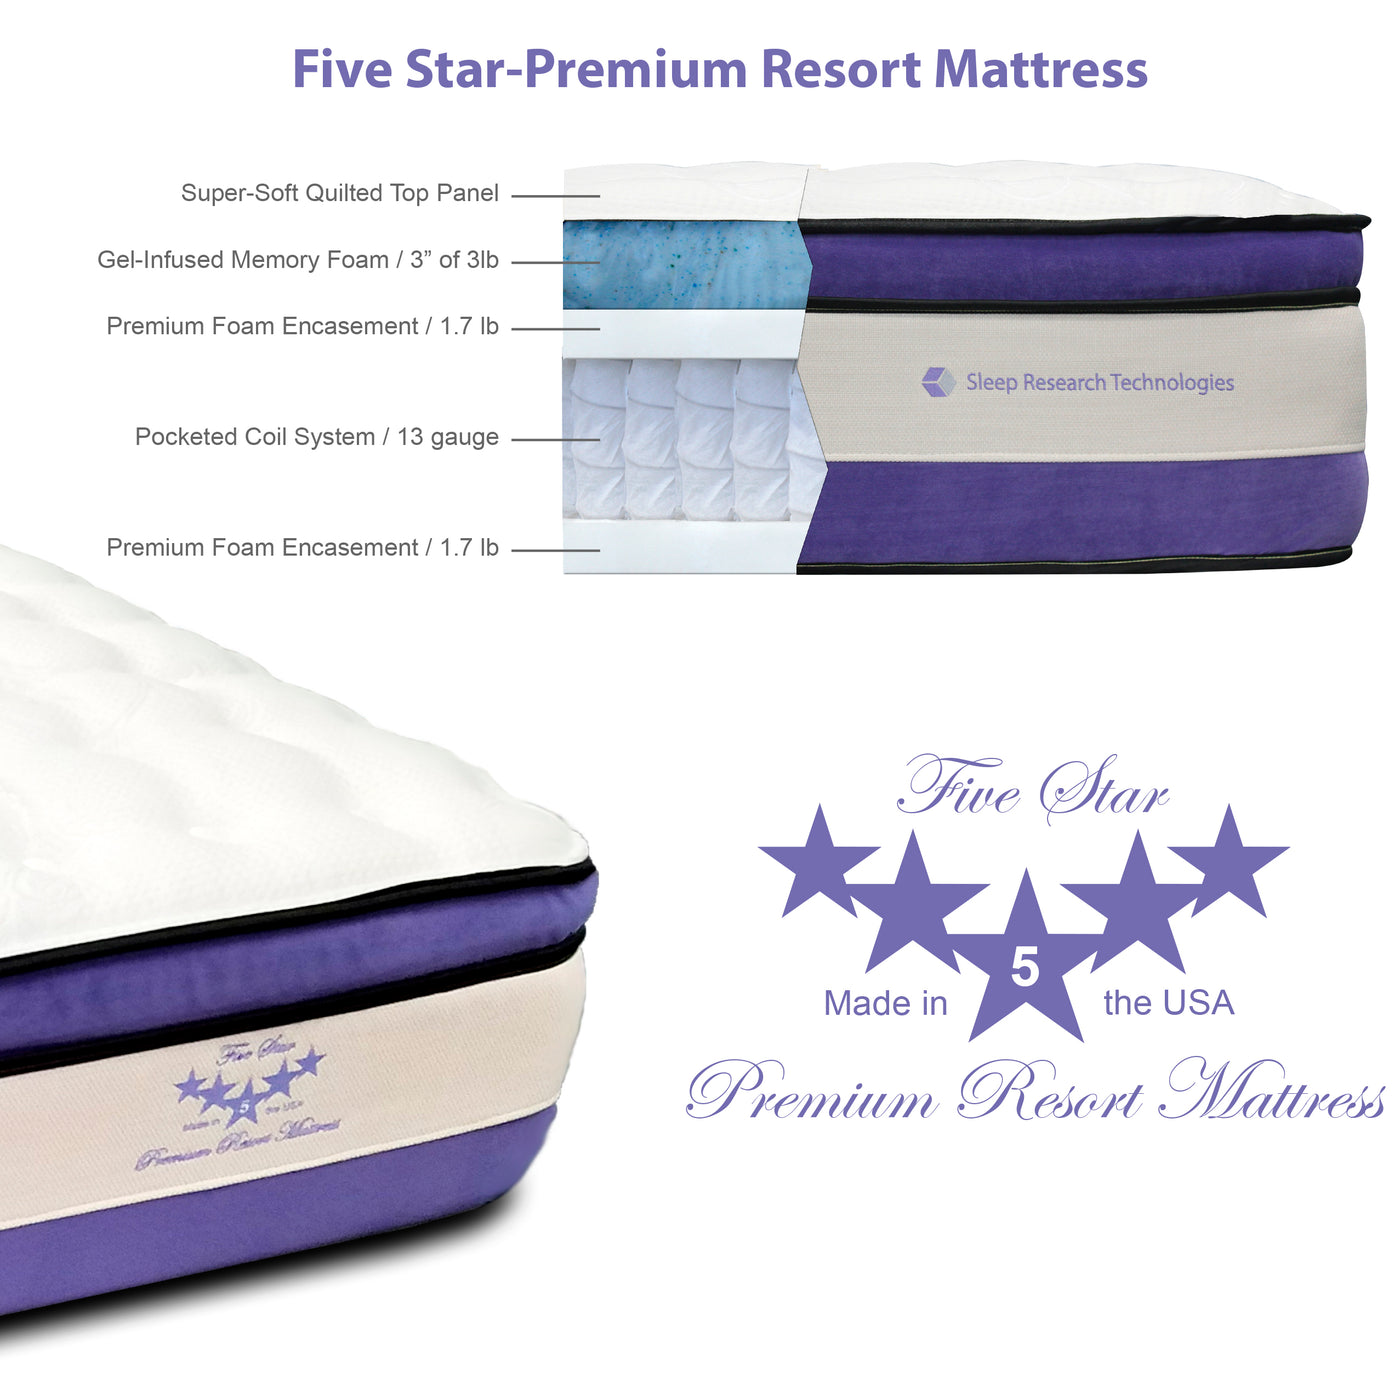 premium resort mattress myauria